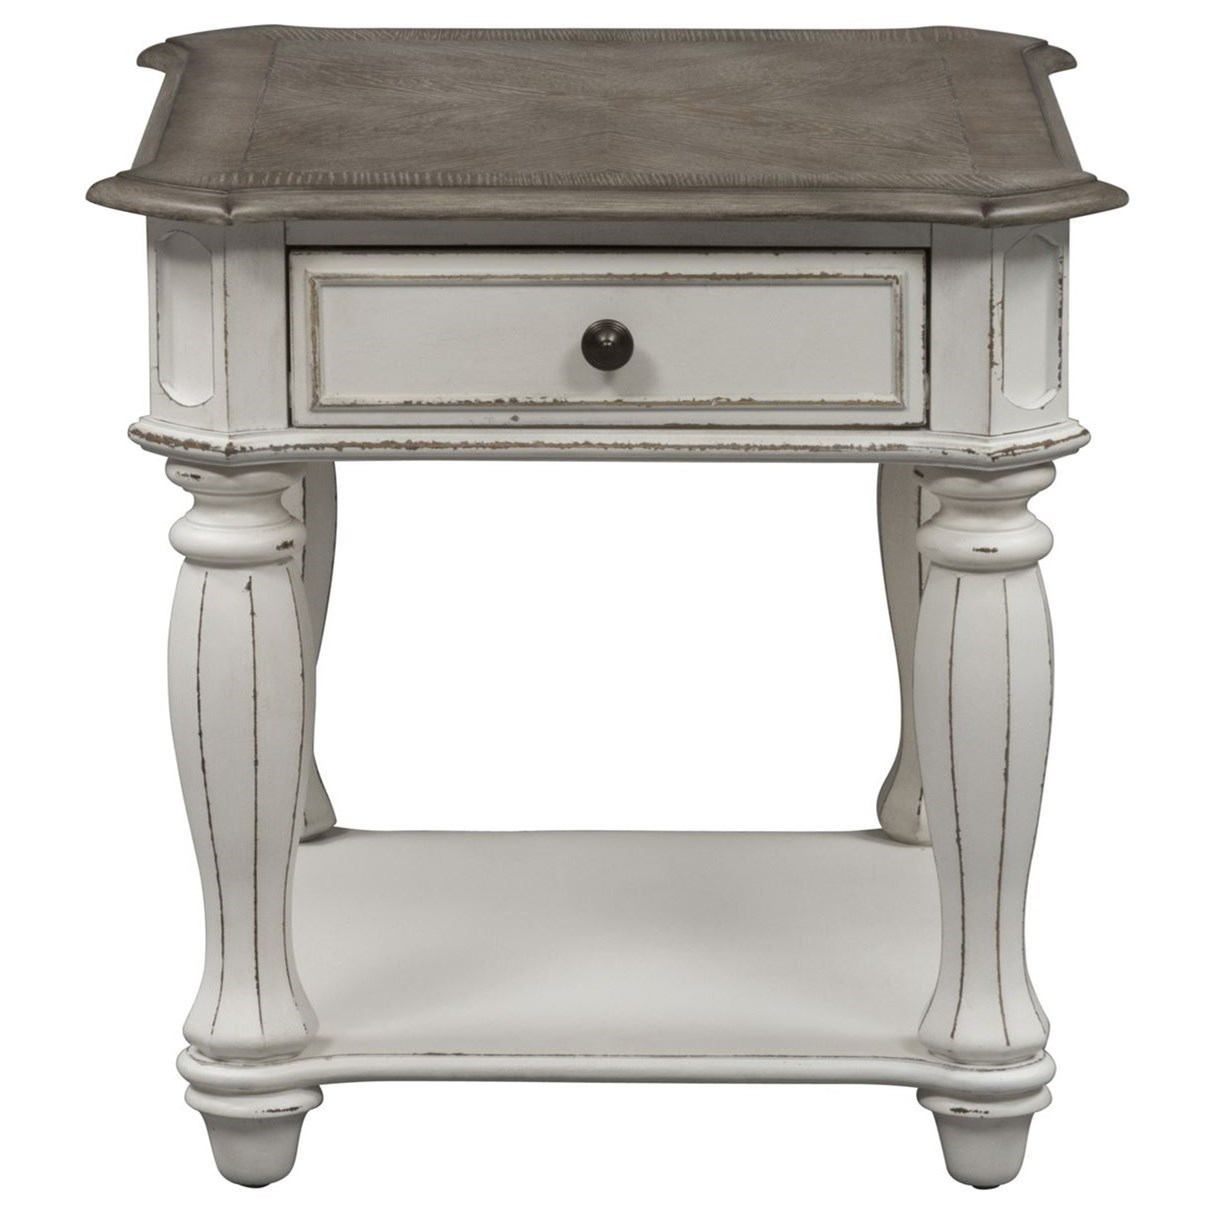 Magnolia Manor End Table with Dovetail Drawer by Liberty Furniture at Northeast Factory Direct